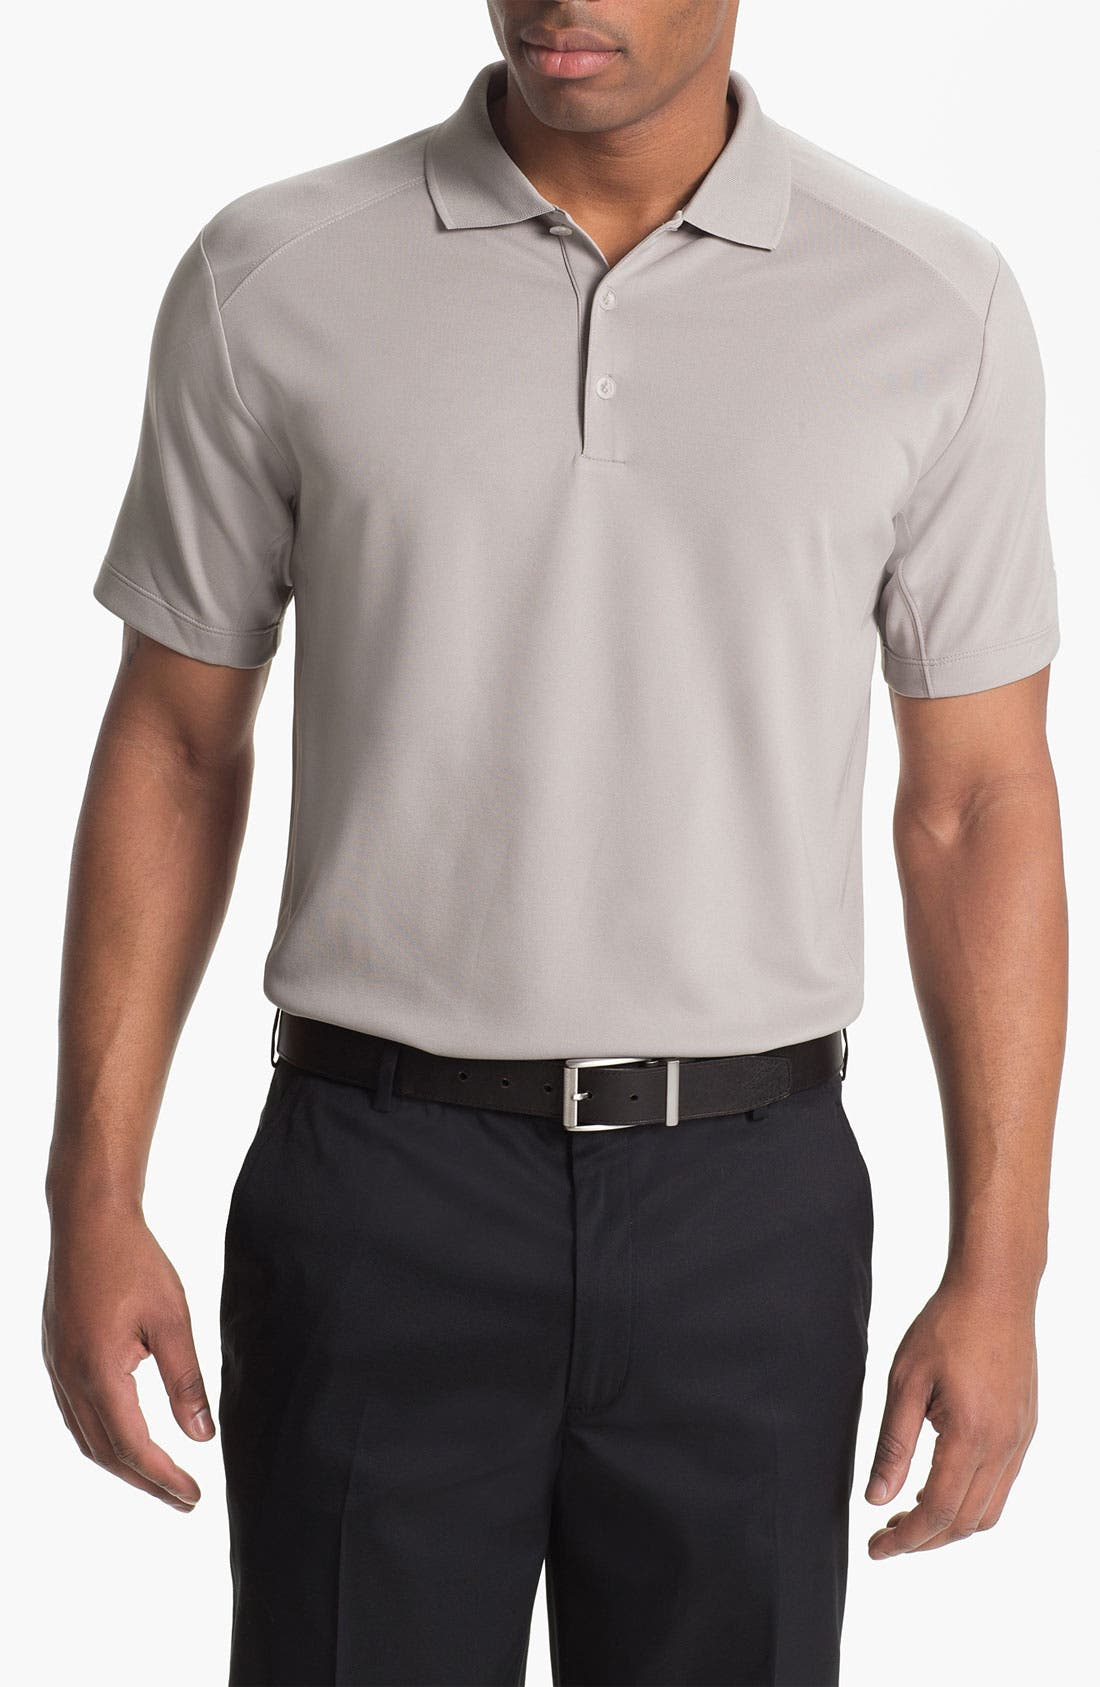 Alternate Image 1 Selected - Nike Dri-FIT 'Victory' Golf Polo (Online Only)